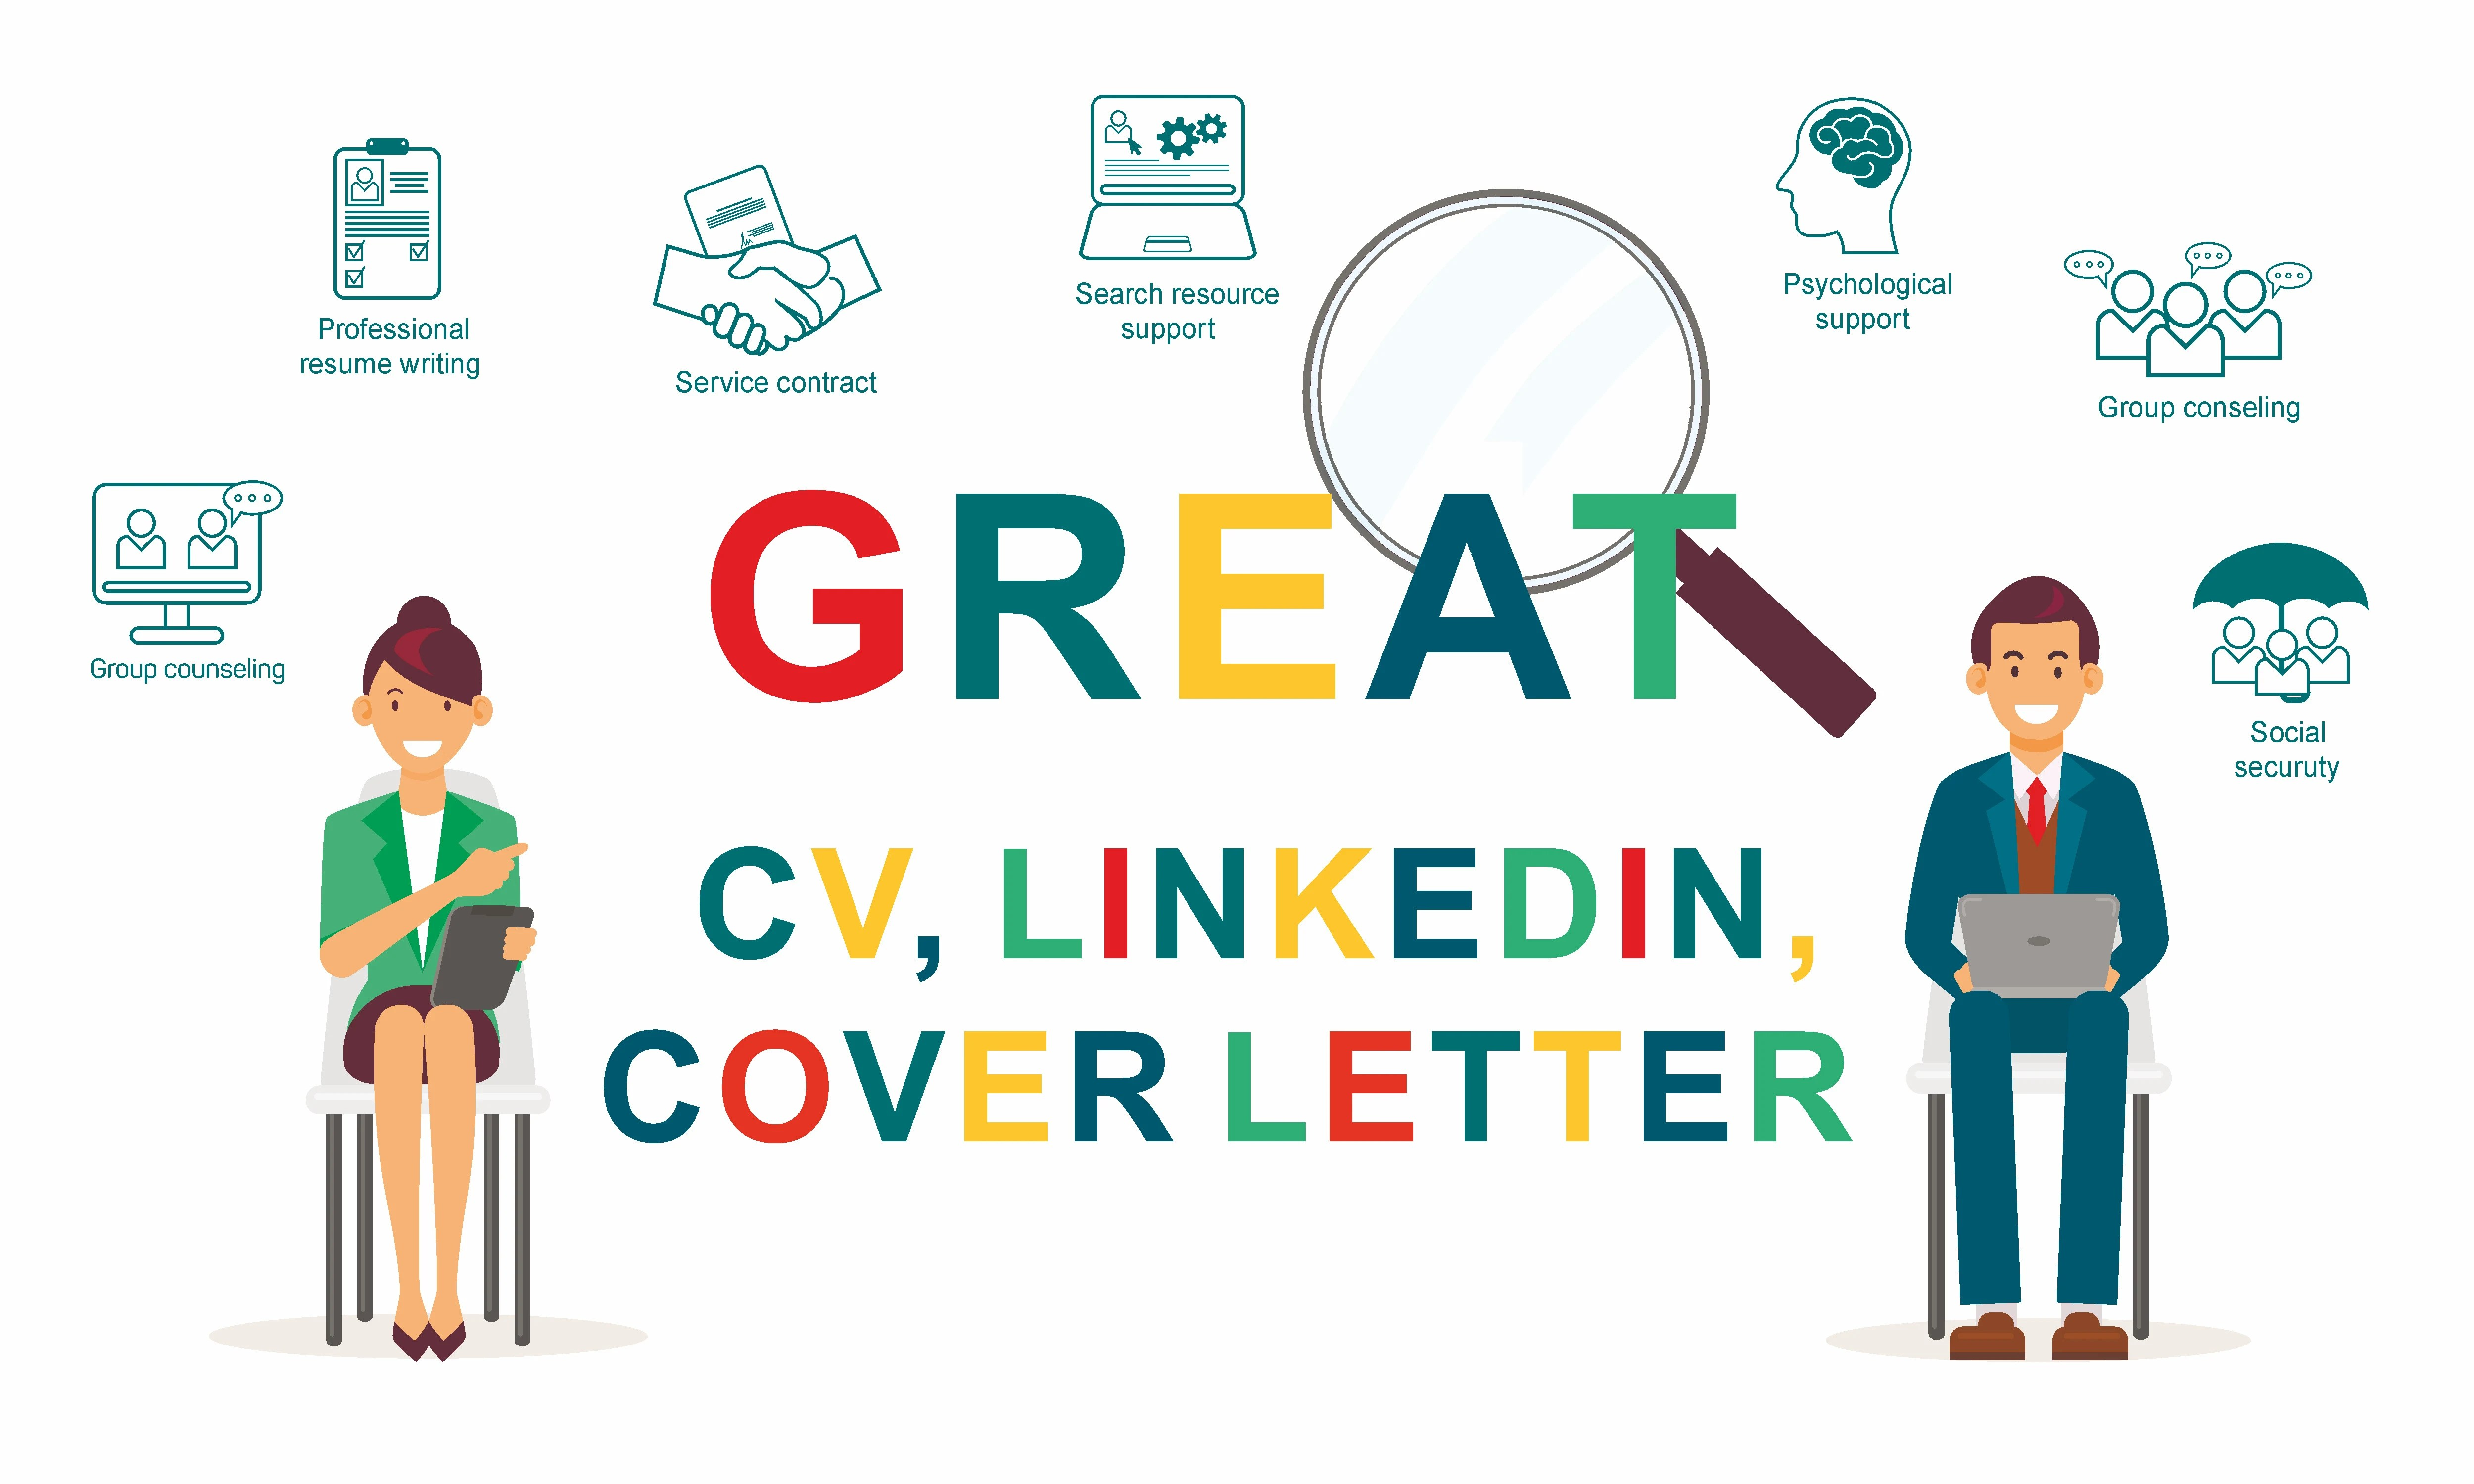 Writing A Cv Cover Letter Help You To Write Your Cv Cover Letter And Prepare To Hr Intervew